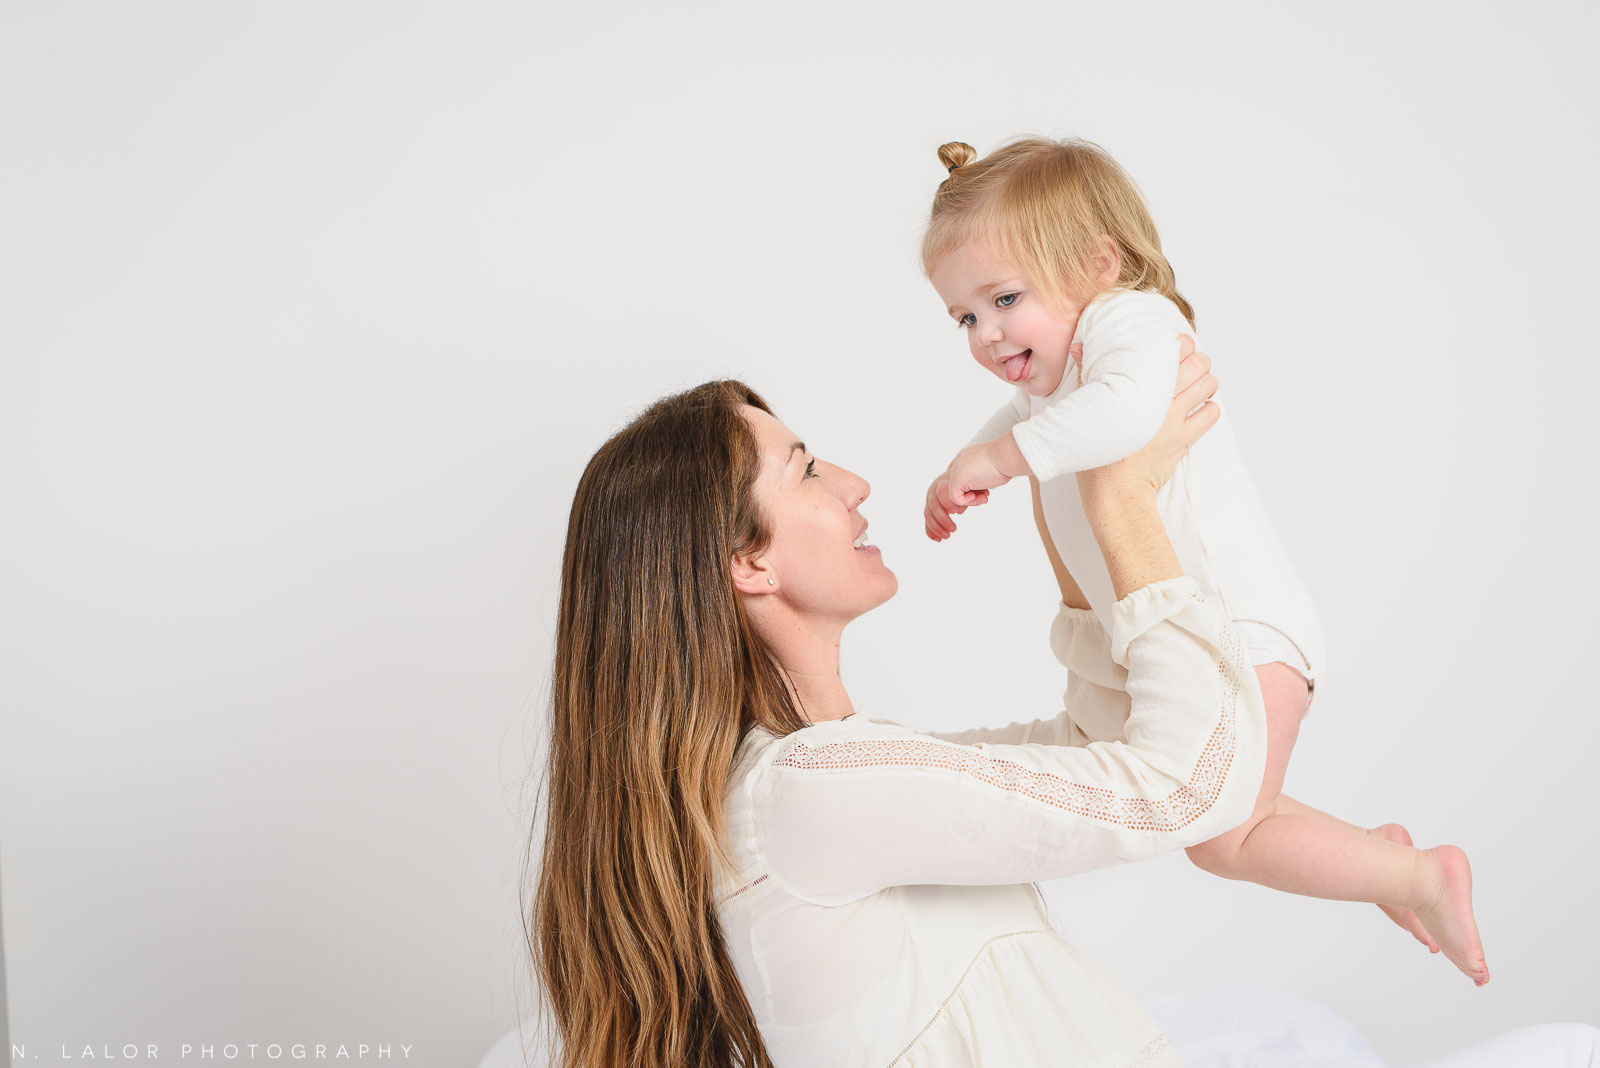 Mom and baby. Studio portrait by N. Lalor Photography, Greenwich CT family photographer.